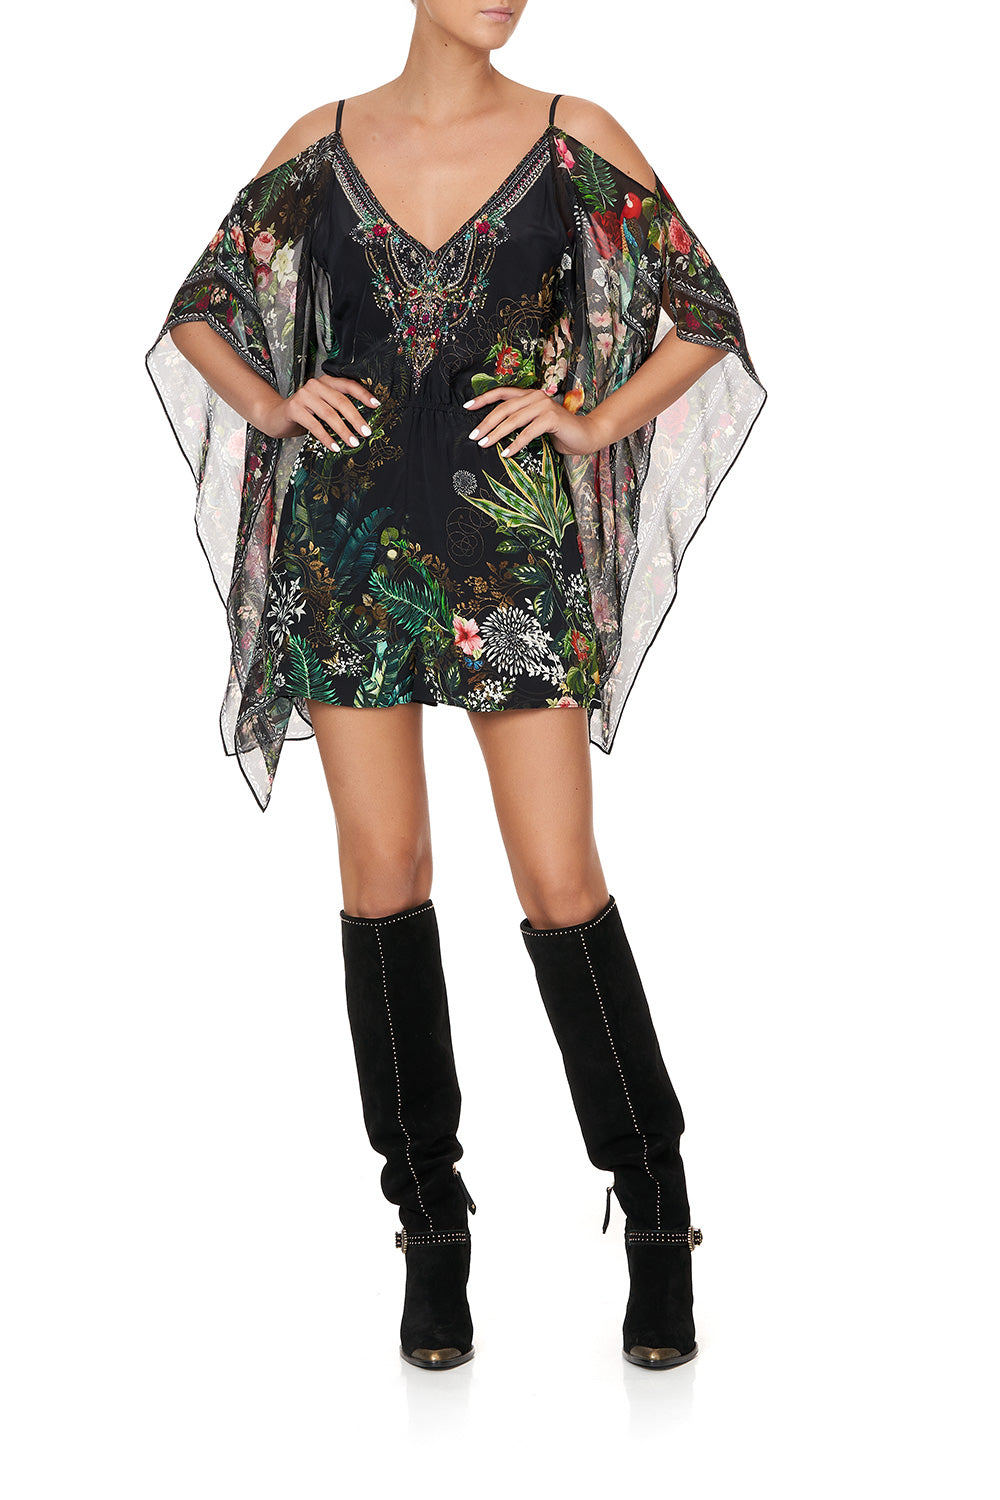 PLAYSUIT WITH SCARF SIDE RAISED WITH WOLVES